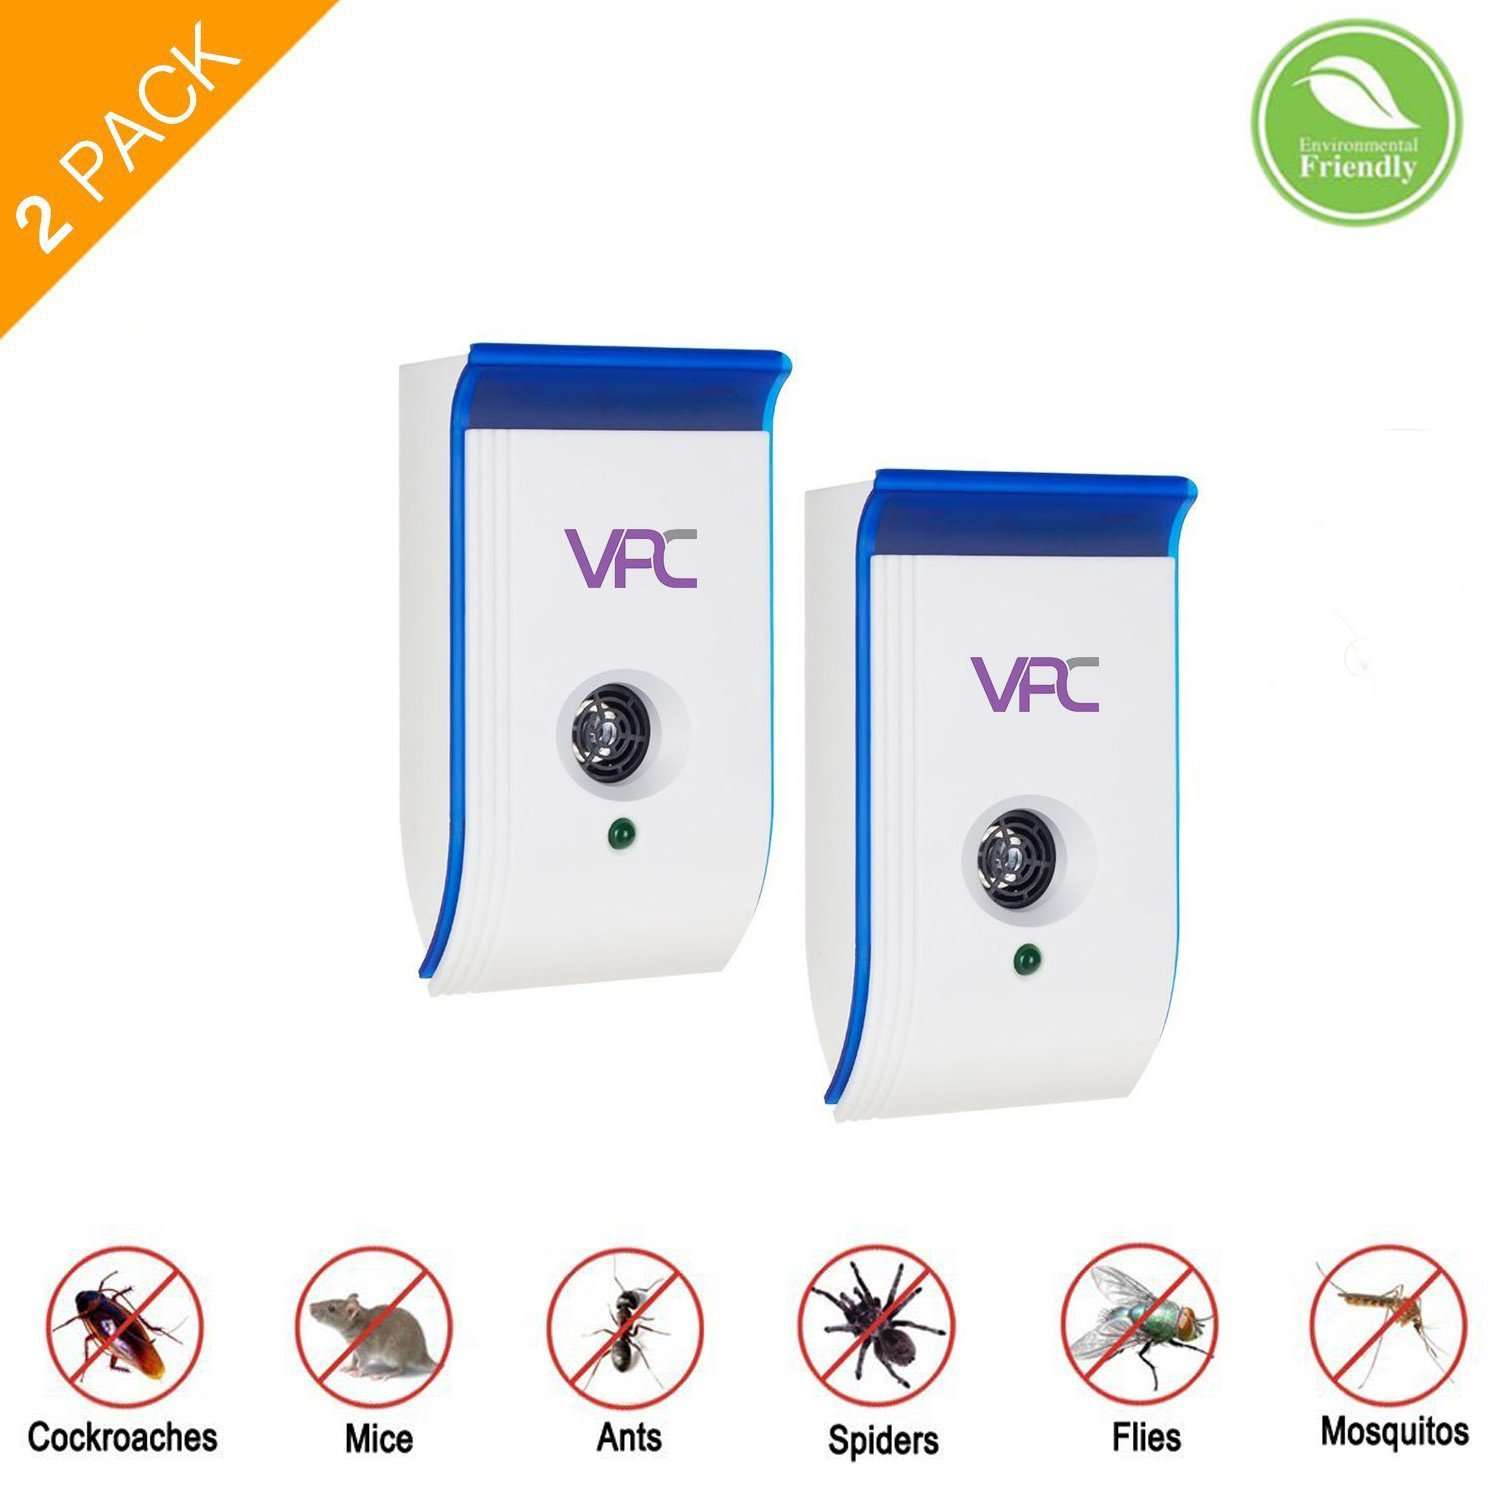 (Pack of 2) Veminate 6 IN 1 Ultrasonic Pest Repeller, Electronic Plug In Insect Repellent,Enhanced Indoor Pest Control with Night Light for Cockroach, Rodents, Flies, Moquitos, Ants, Spiders, Fleas, M Verminate